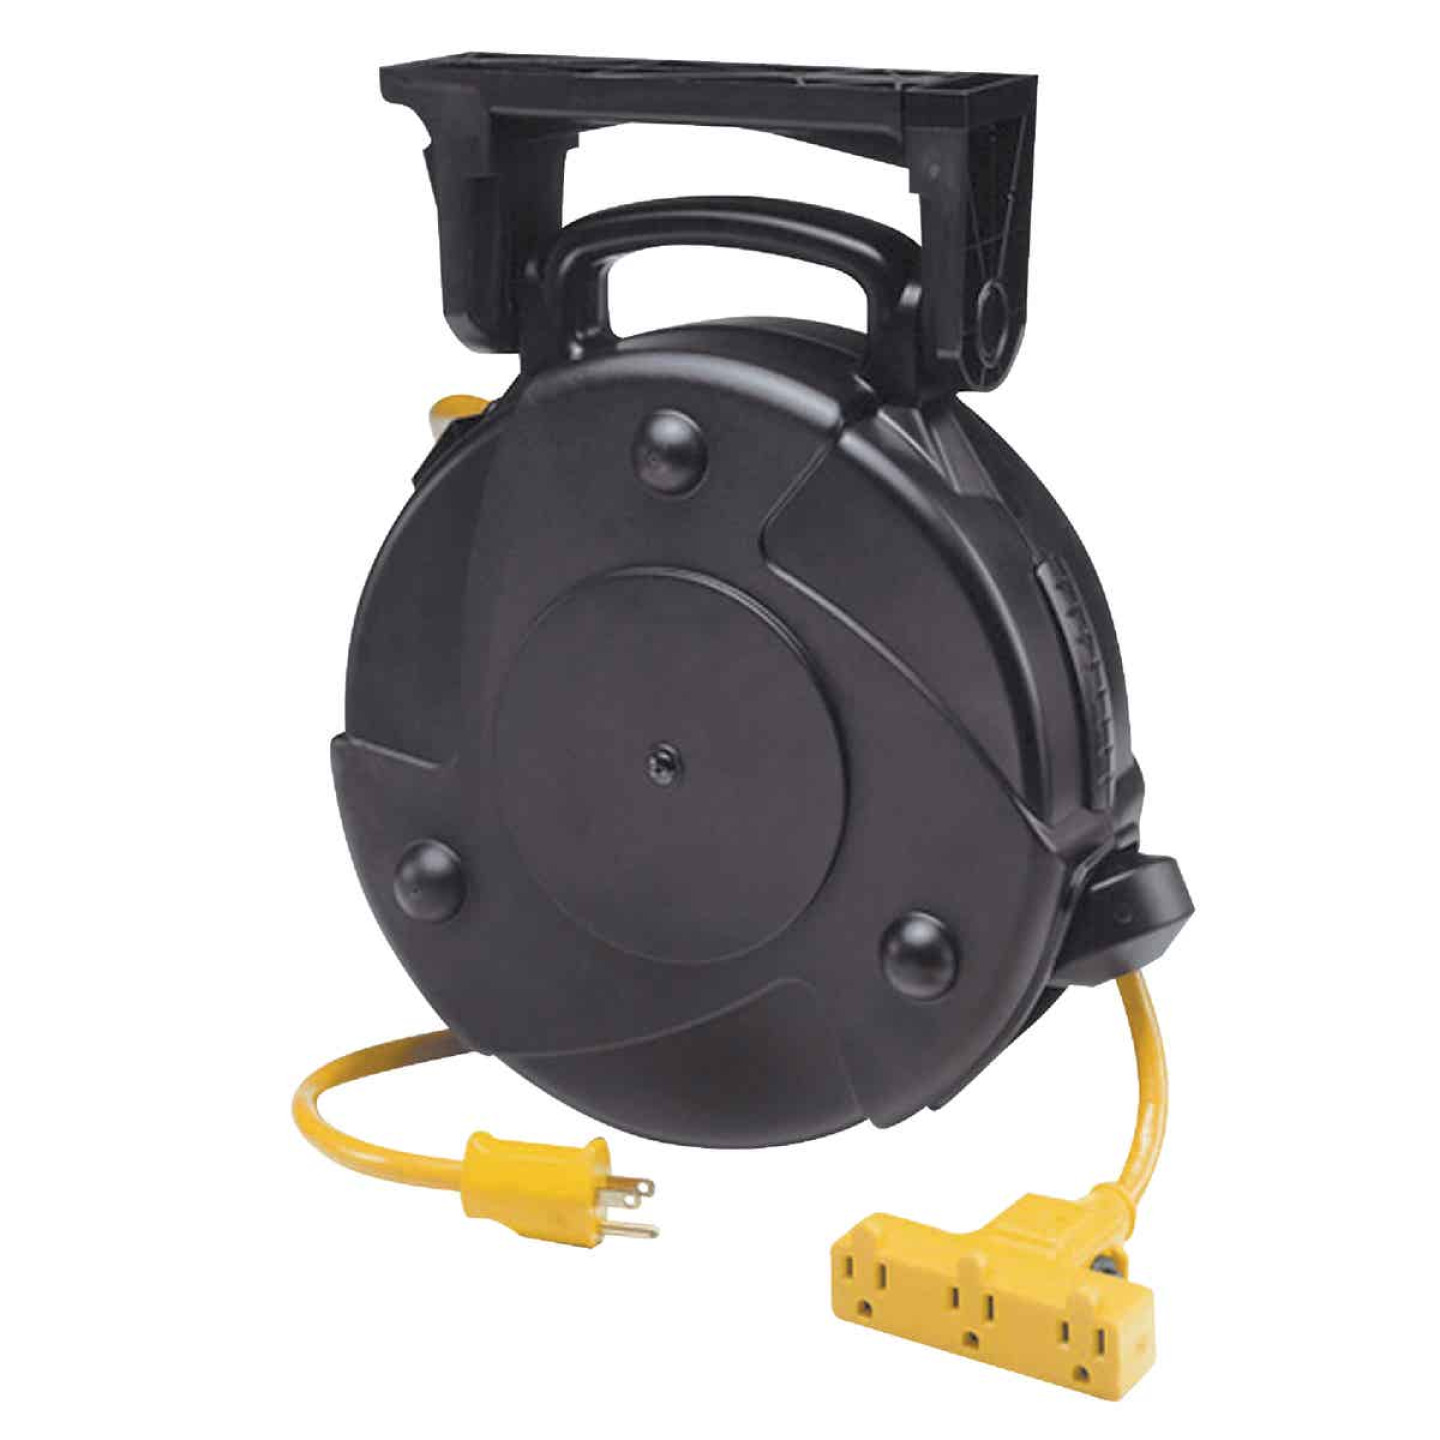 Alert Stamping 50 Ft. 14/3 Industrial Triple Tap Retractable Extension Cord Reel Image 1